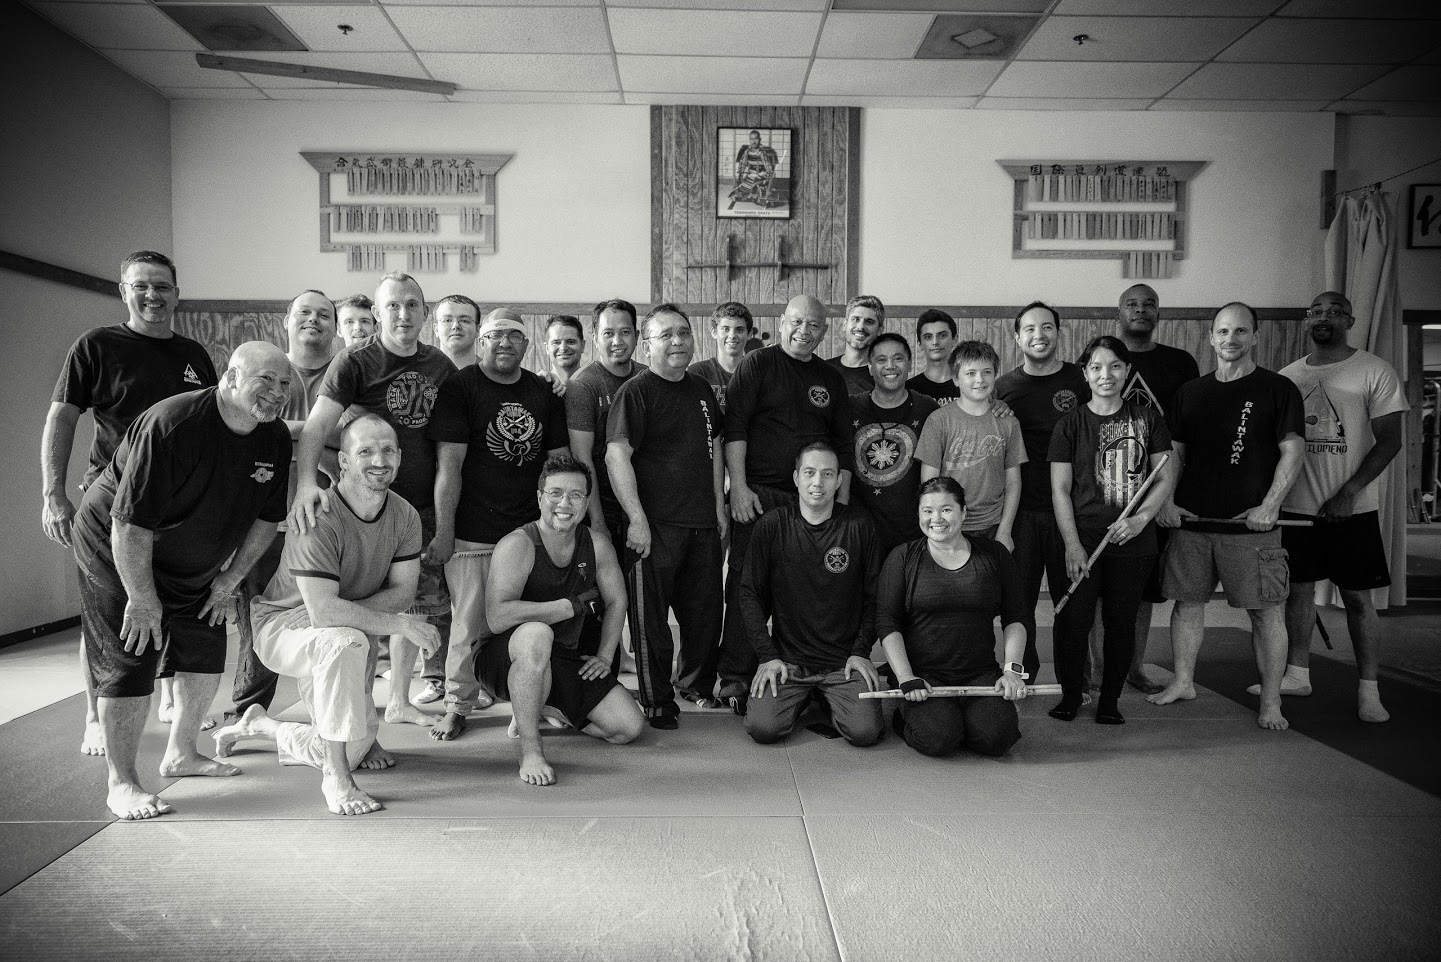 Participants of the Intensive Training Session with Grand Master Taboada in Atlanta. Photo courtesy of Micheal Smith.